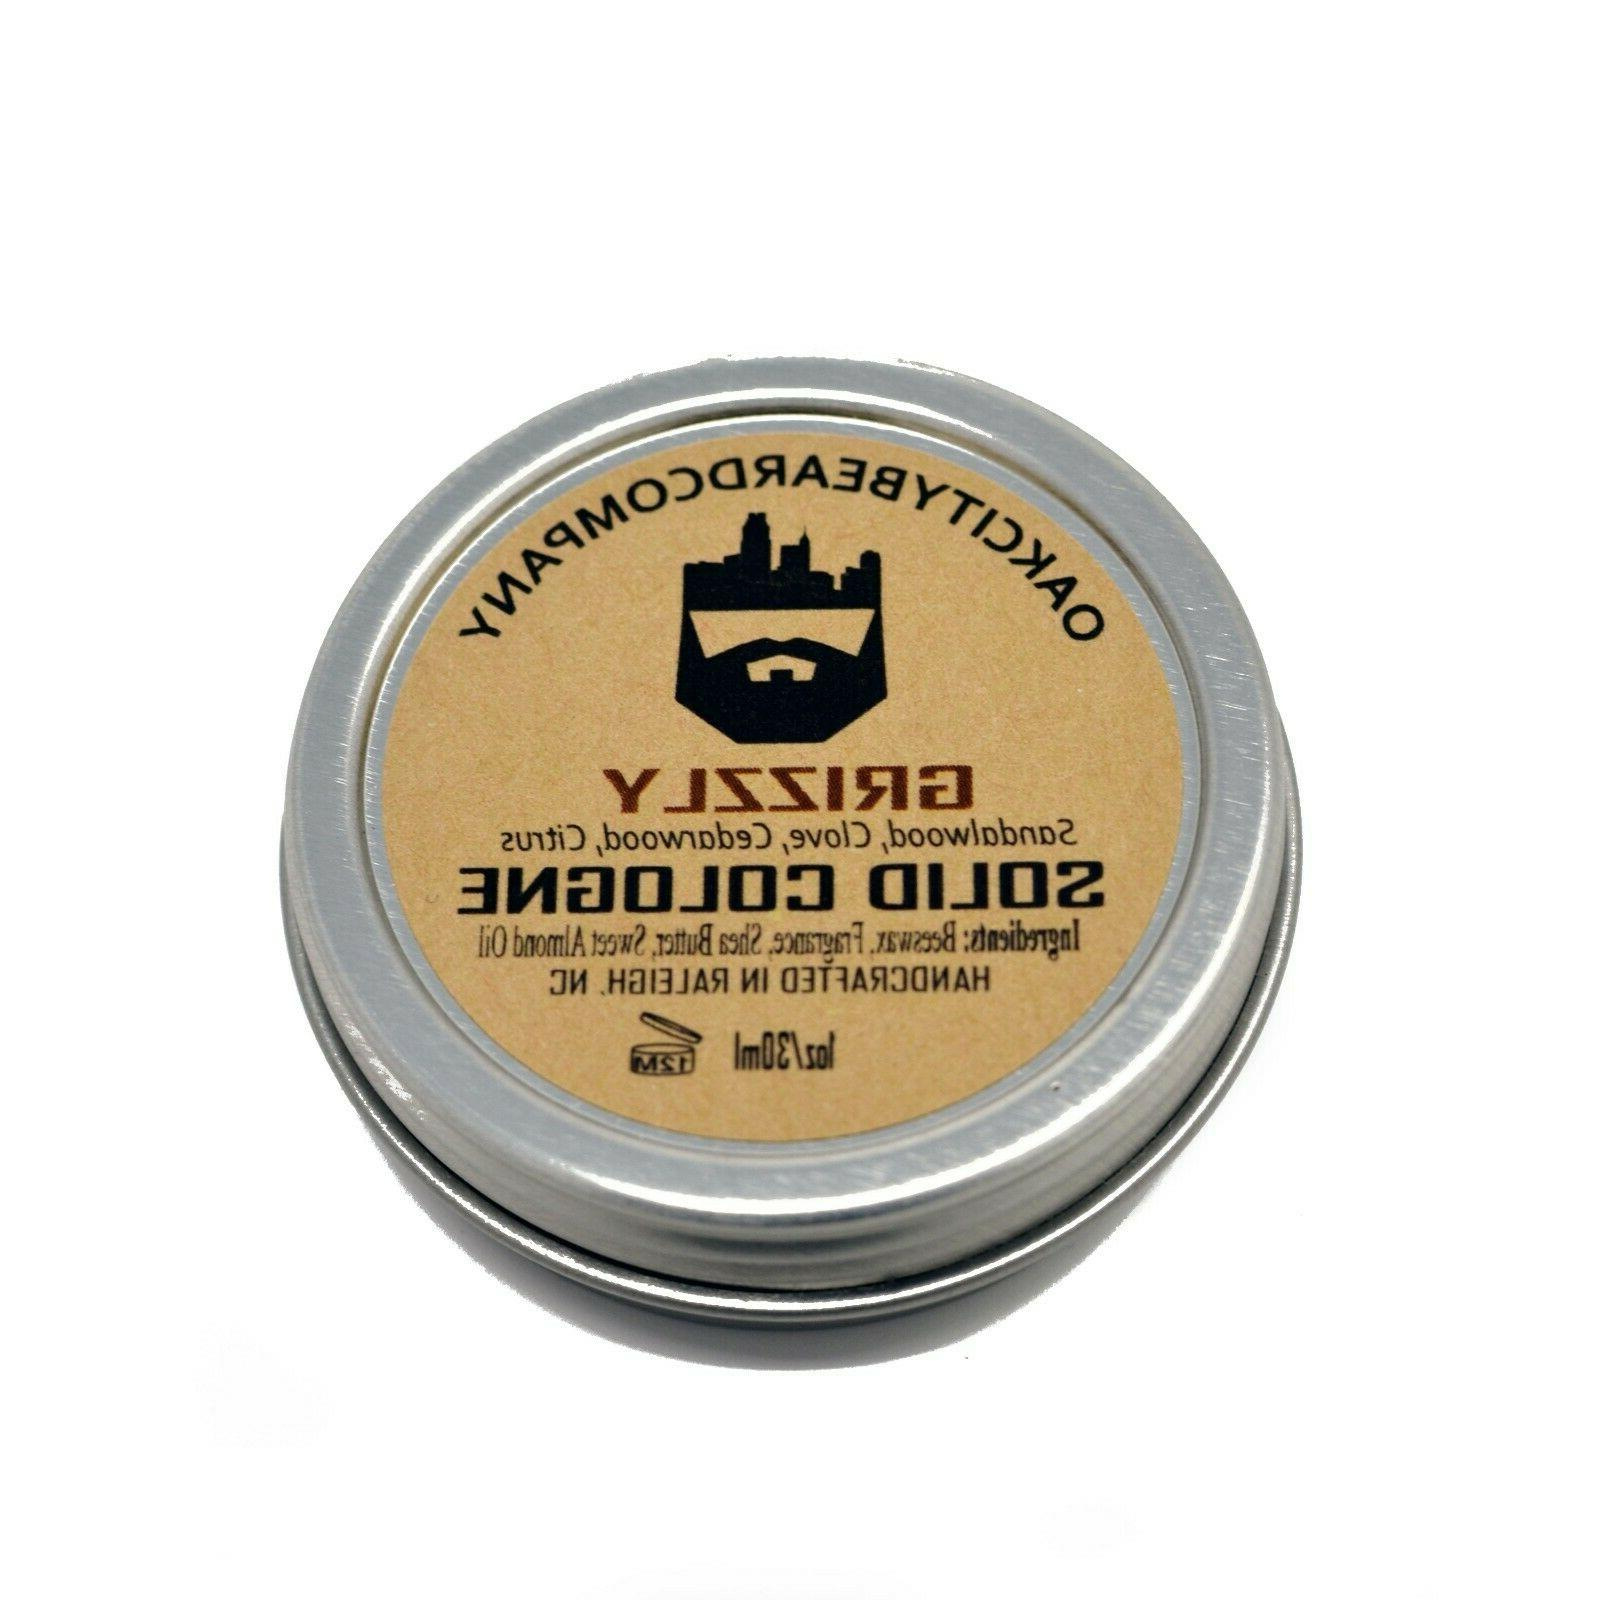 Oak City Beard Co.- Solid Cologne Natural Oils -